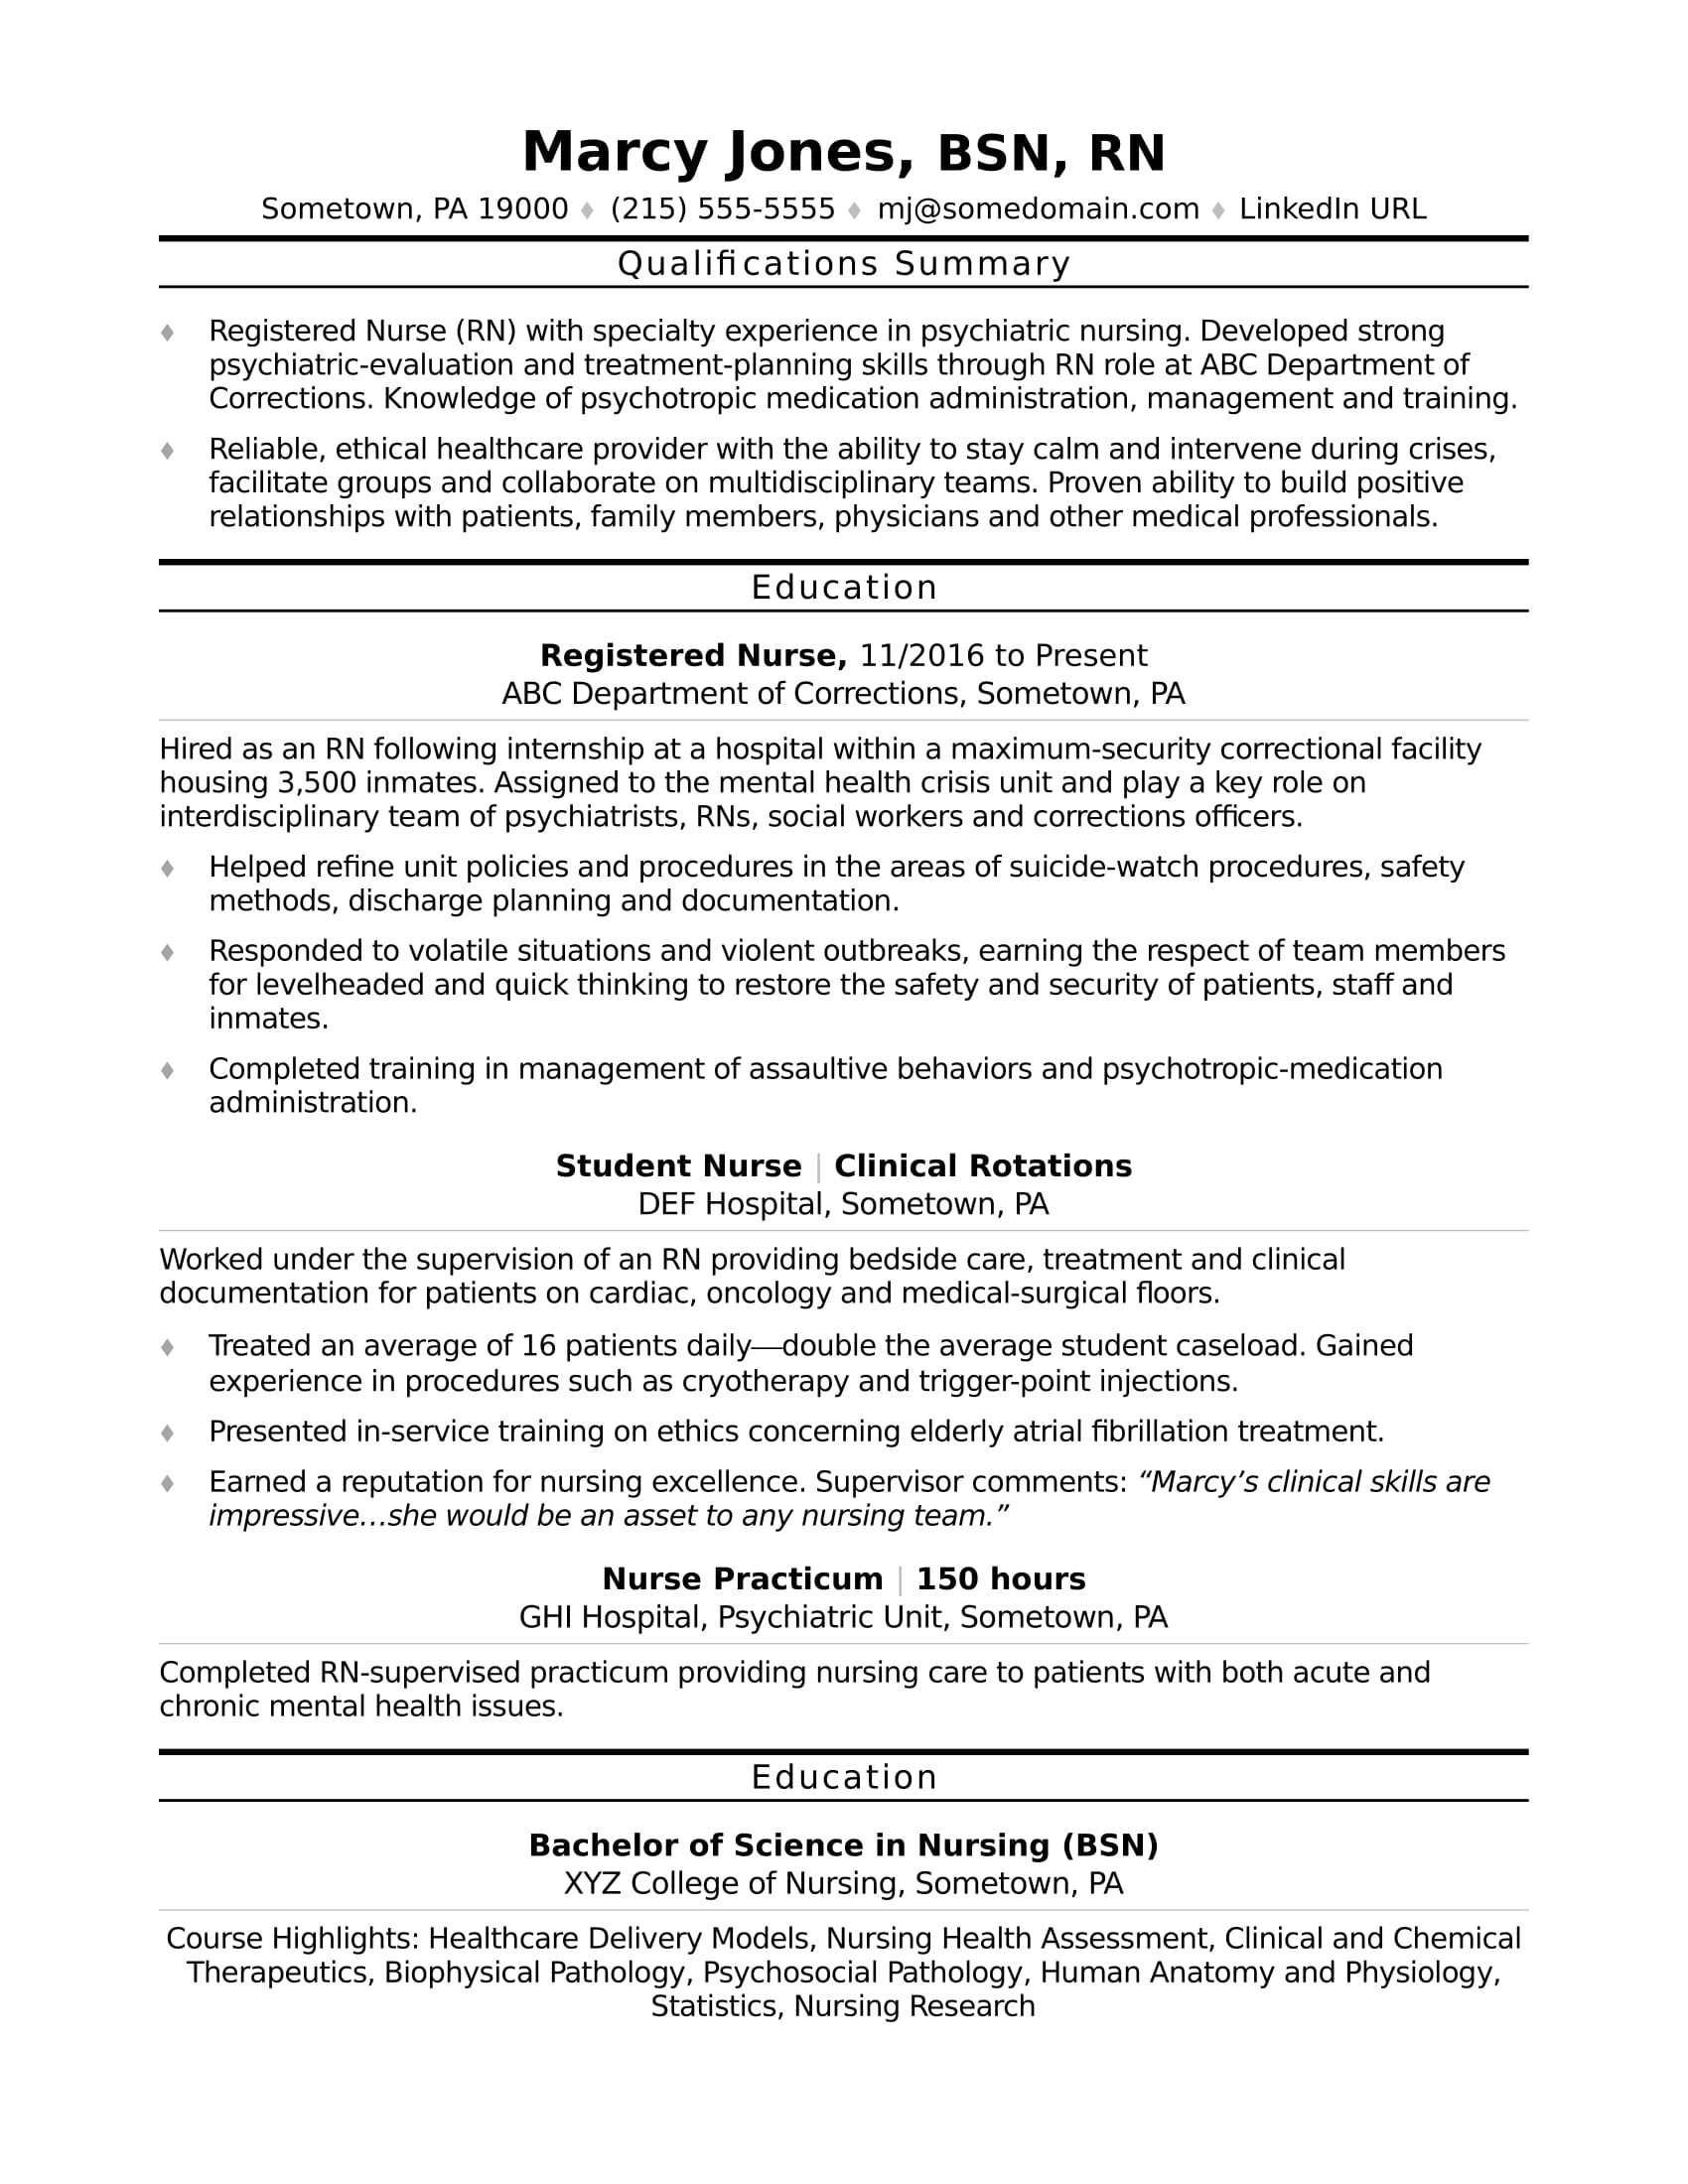 registered nurse rn resume sample monster new grad nursing skills entry level social work Resume New Grad Nursing Skills Resume